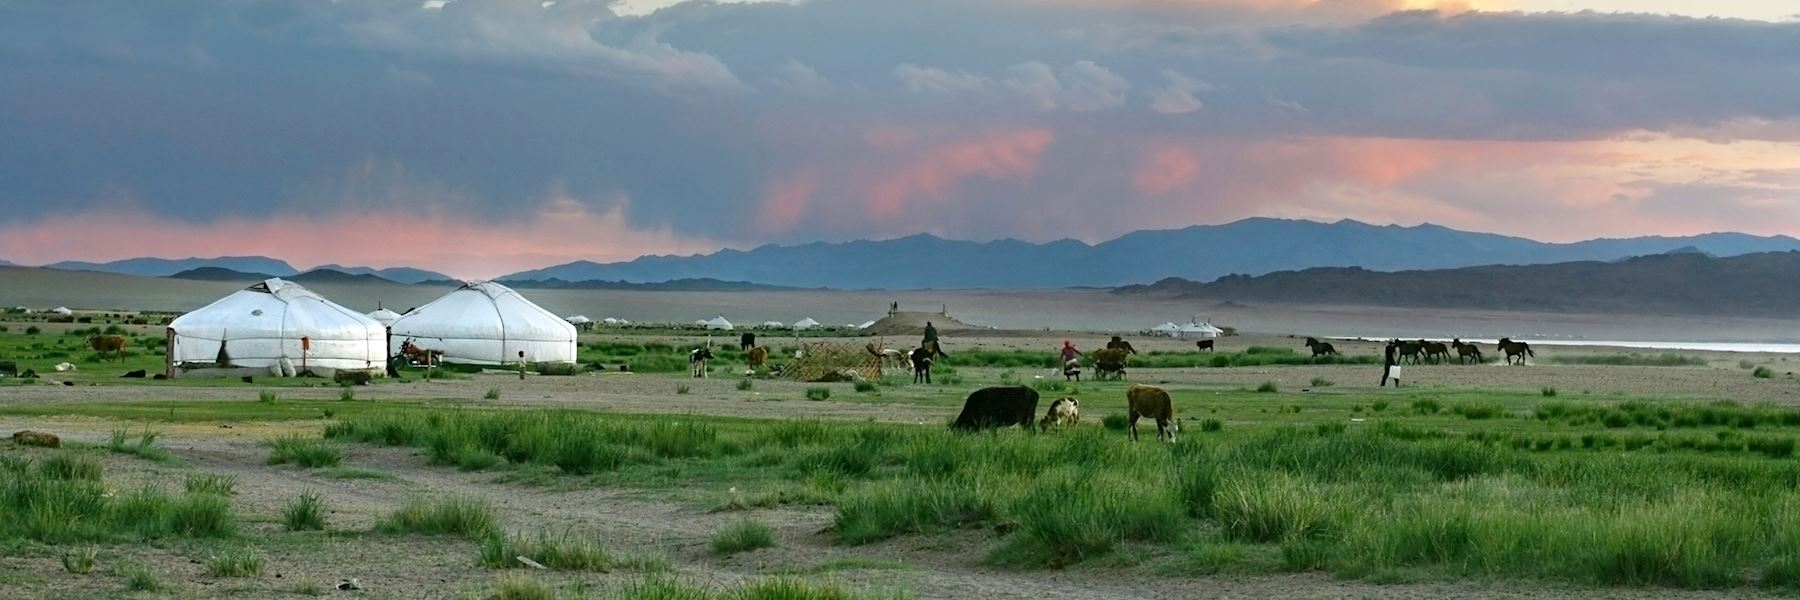 Mongolia travel guides